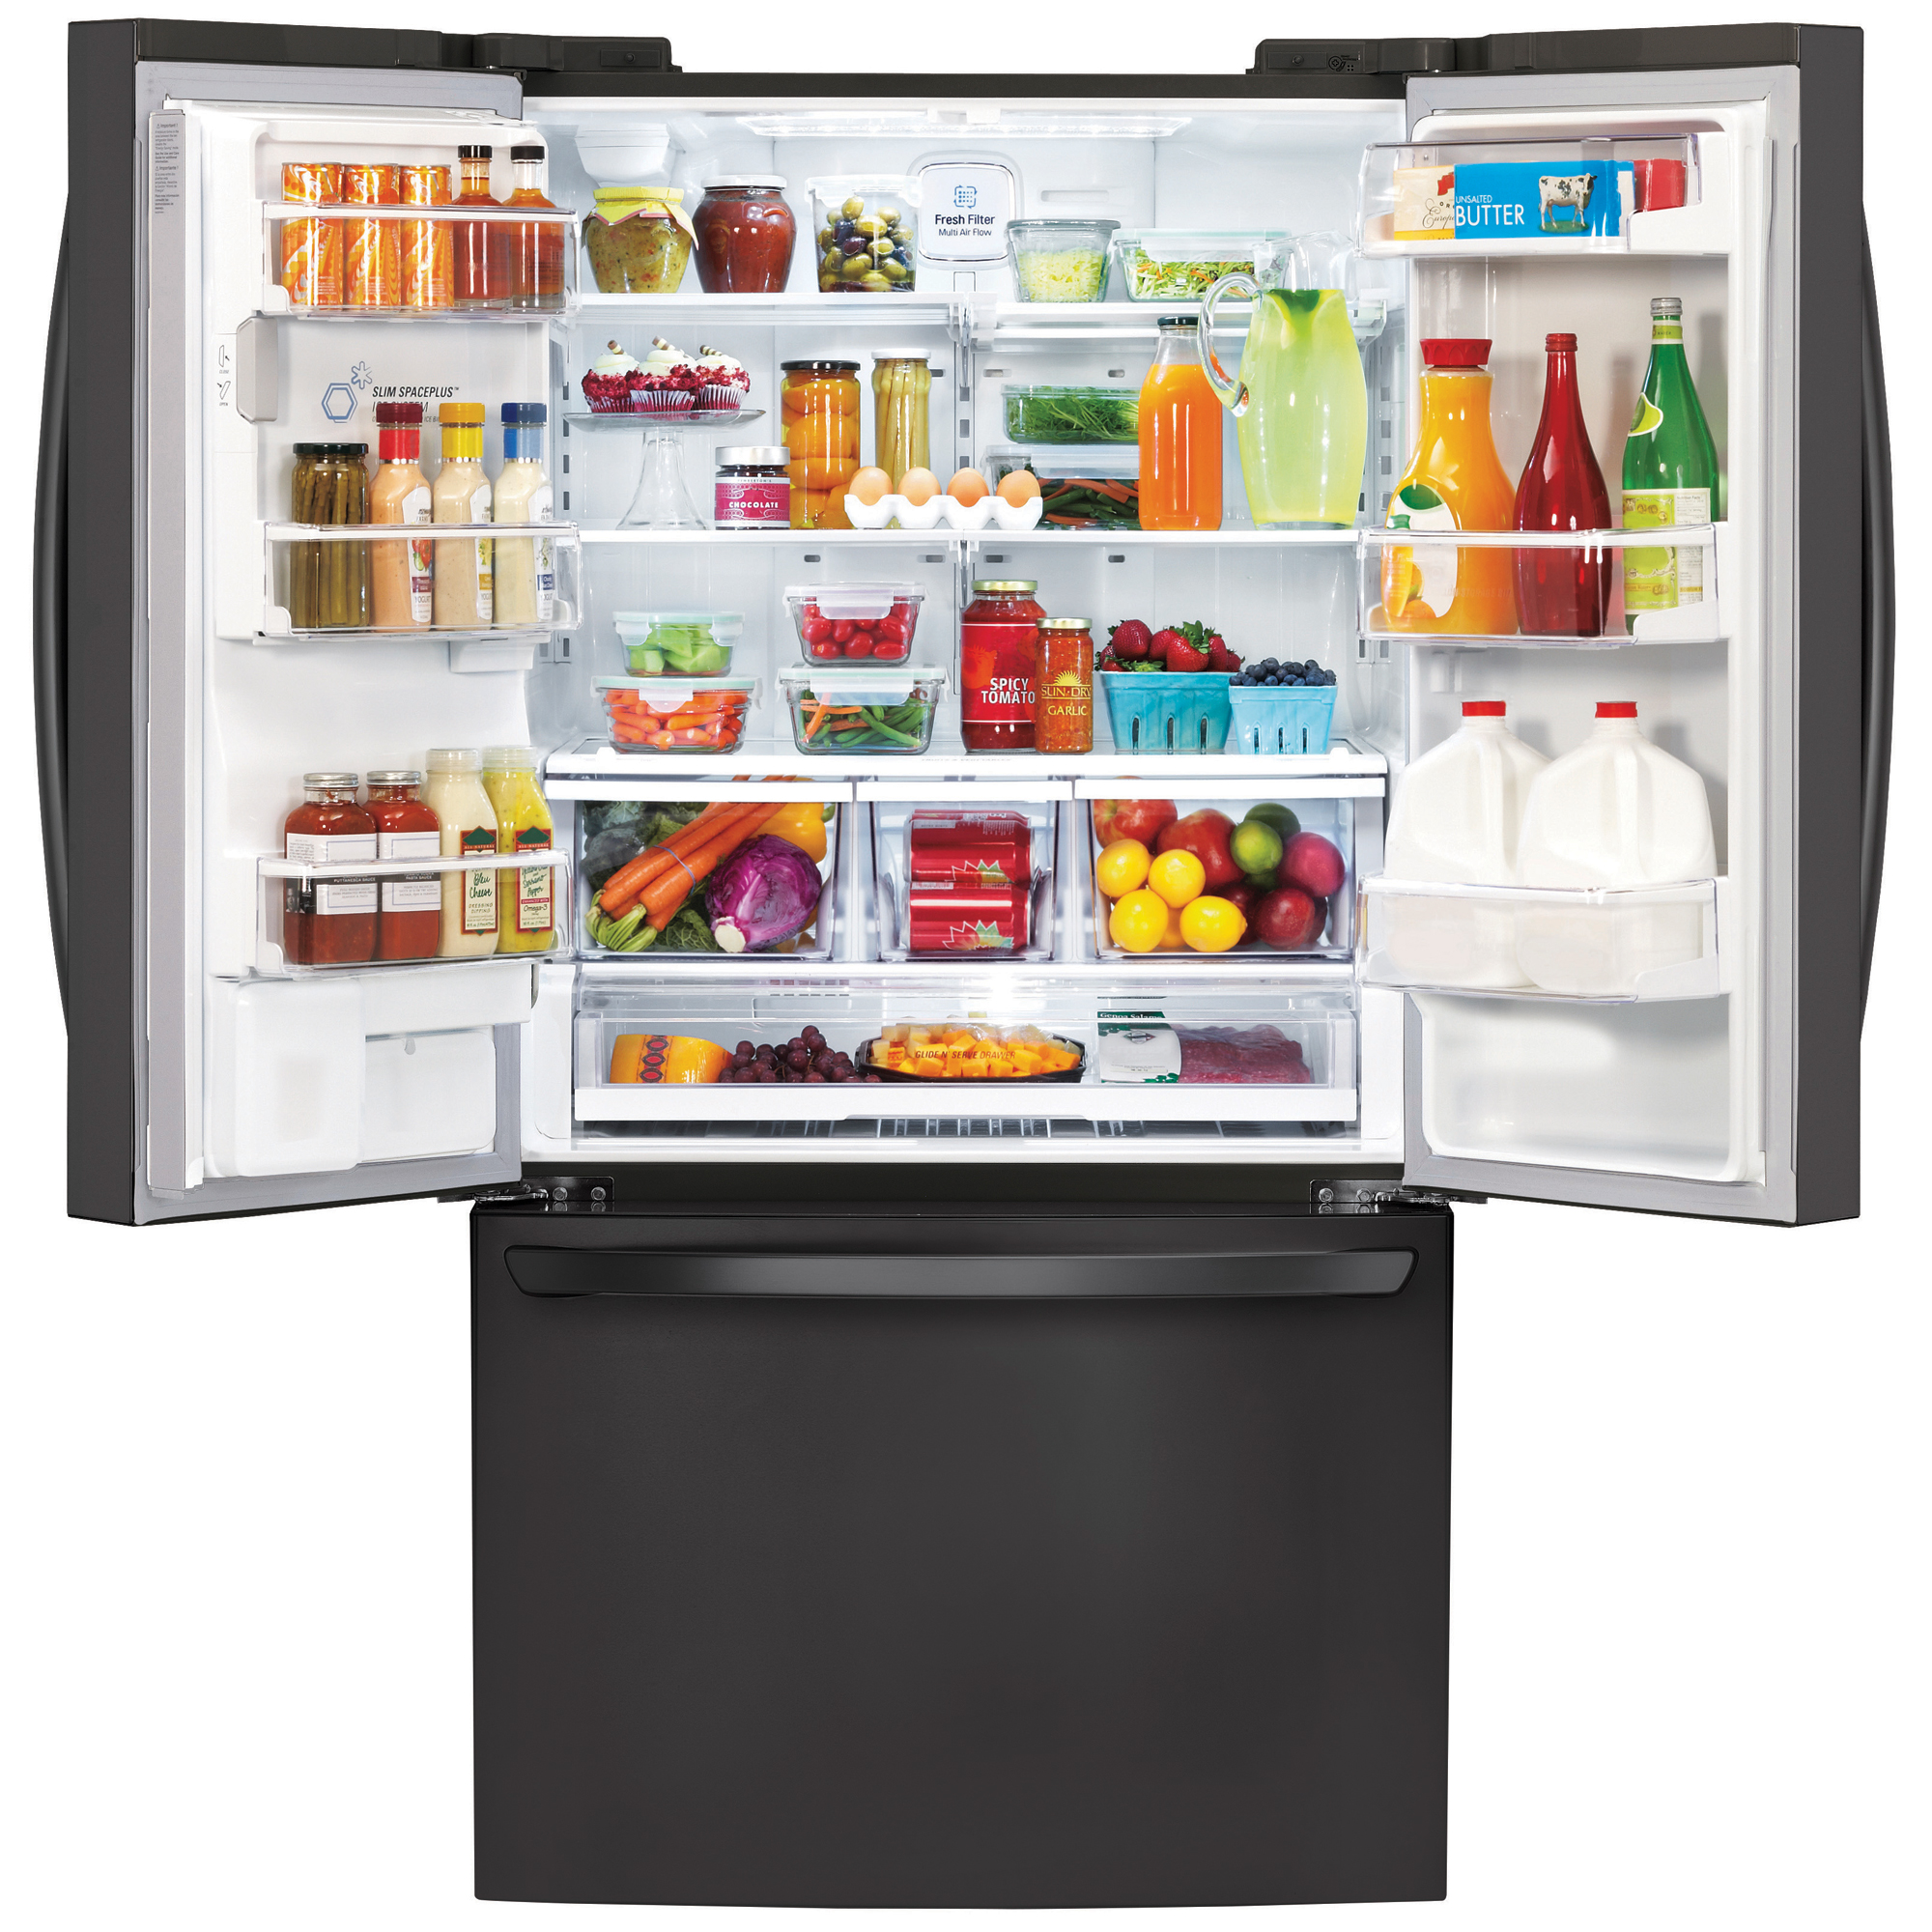 LG LFXS29626B 28.8 cu. ft. Ultra-Capacity French Door Refrigerator w/ Smart Cooling Plus - Black